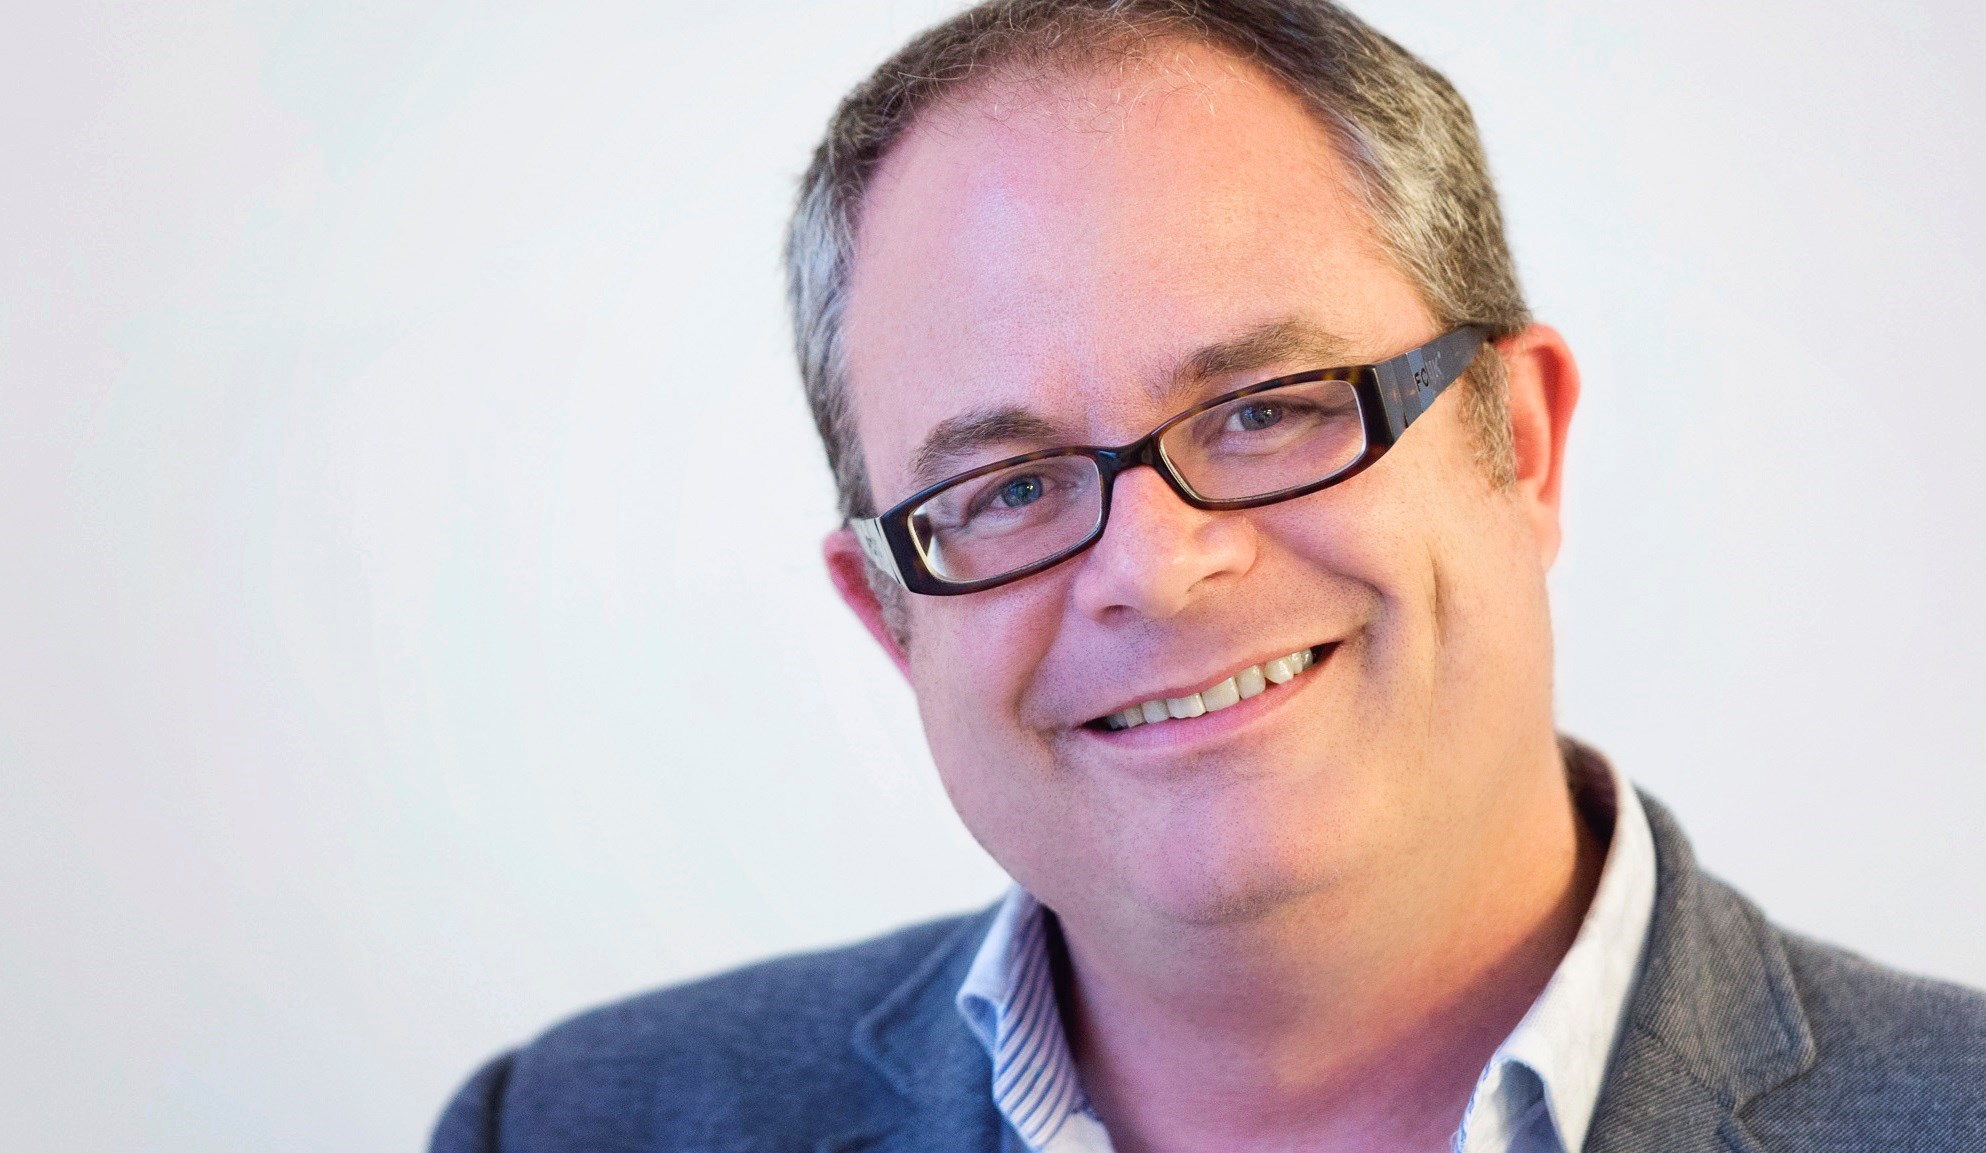 David Anderson is a managing partner for Insight NZ.